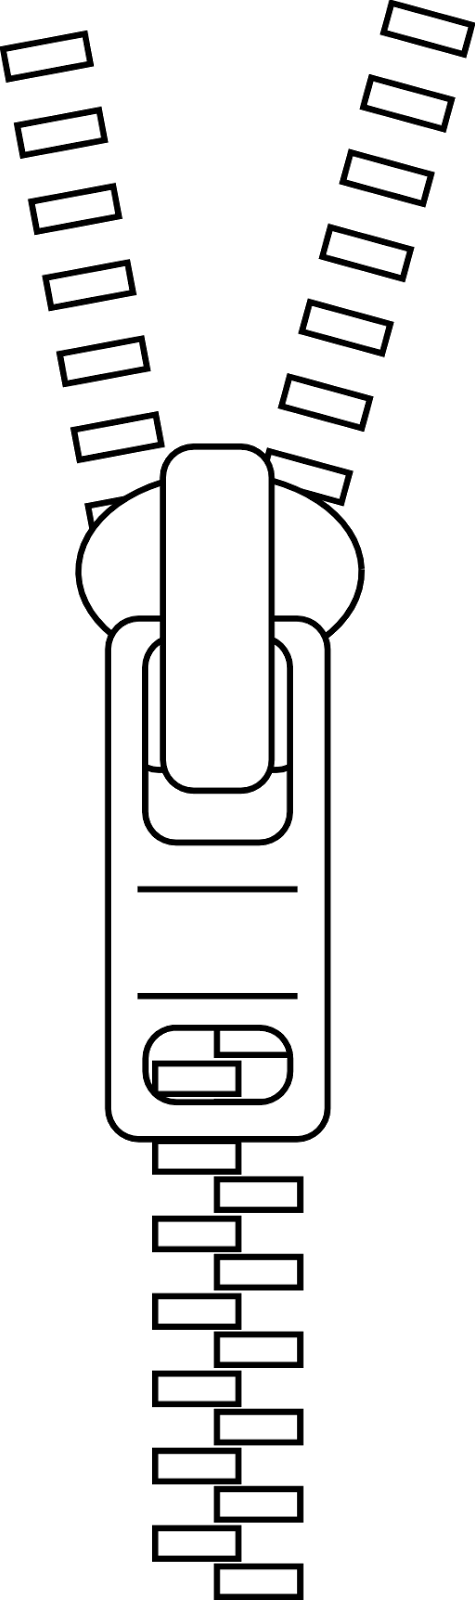 Zipper Black And White Png & Free Zipper Black And White.png.